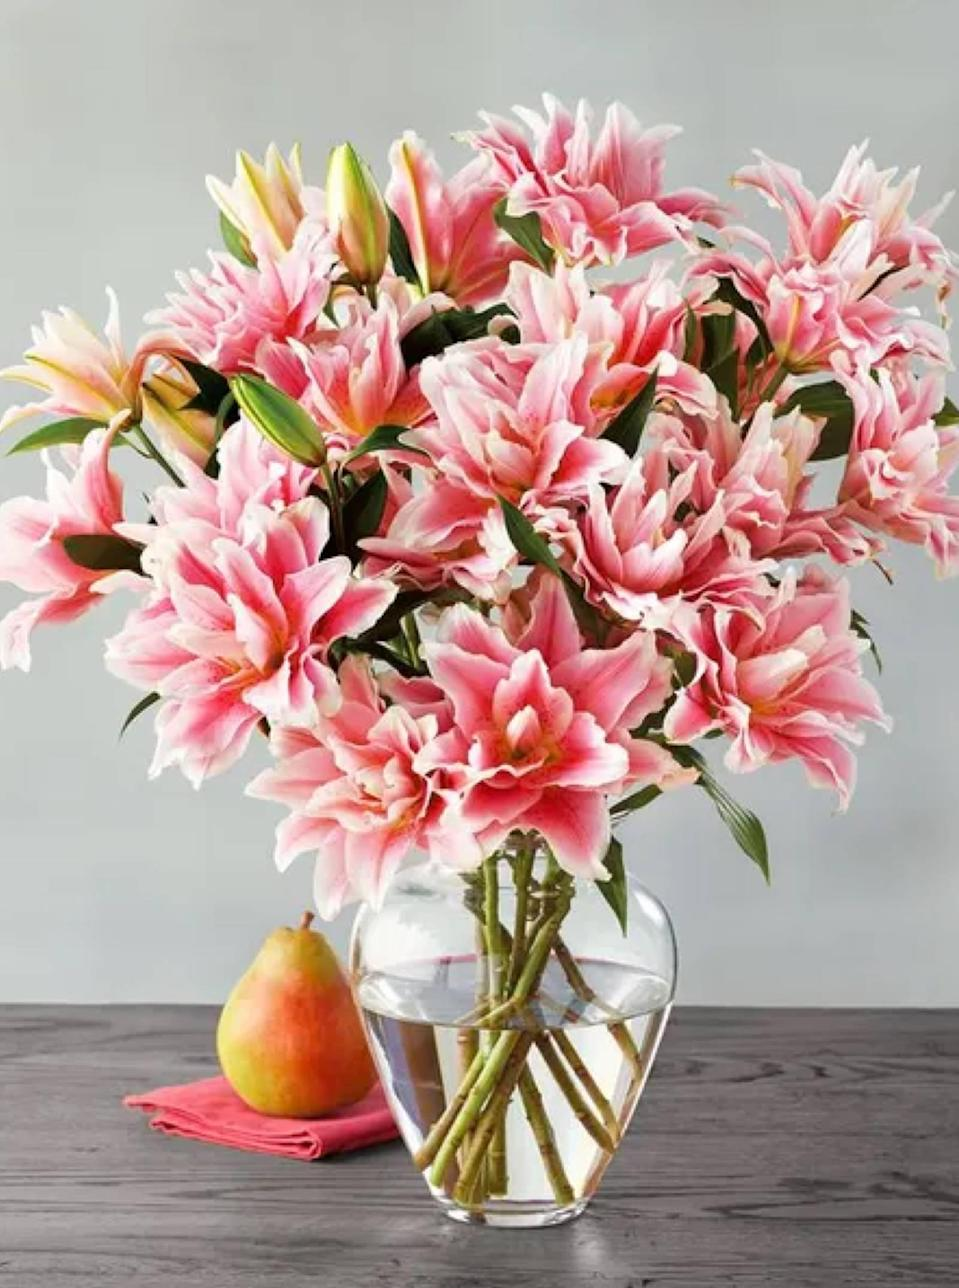 """Look to Harry & David for a virtually endless supply of fresh bouquets, potted plants, and edible arrangements (a top-notch <a href=""""https://www.glamour.com/gallery/gifts-for-foodies?mbid=synd_yahoo_rss"""" rel=""""nofollow noopener"""" target=""""_blank"""" data-ylk=""""slk:foodie gift"""" class=""""link rapid-noclick-resp"""">foodie gift</a>, FYI). The website's selection *can* be overwhelming, so narrow down options by occasion and budget. Heads up: Harry & David doesn't ship to P.O. boxes, and you'll want to check its <a href=""""https://cna.st/affiliate-link/r6wFKS8kAbvwZPpxz5efPvRrbR5SNqAHbkM7j3ZVTjFPFG8Uv1S5Znmh7UzkCfH1sjf74pAZToFMf2LeNcovGr2HvpEuoQ1Y6ragfWBKkXYFNYnZk?cid=608196a59b19107e88e7c951"""" rel=""""nofollow noopener"""" target=""""_blank"""" data-ylk=""""slk:cut-off dates"""" class=""""link rapid-noclick-resp"""">cut-off dates</a> for holiday-specific orders. $80, Roselily Bouquet. <a href=""""https://www.harryanddavid.com/h/flowers-plants/flower-arrangements-bouquets/31421"""" rel=""""nofollow noopener"""" target=""""_blank"""" data-ylk=""""slk:Get it now!"""" class=""""link rapid-noclick-resp"""">Get it now!</a>"""